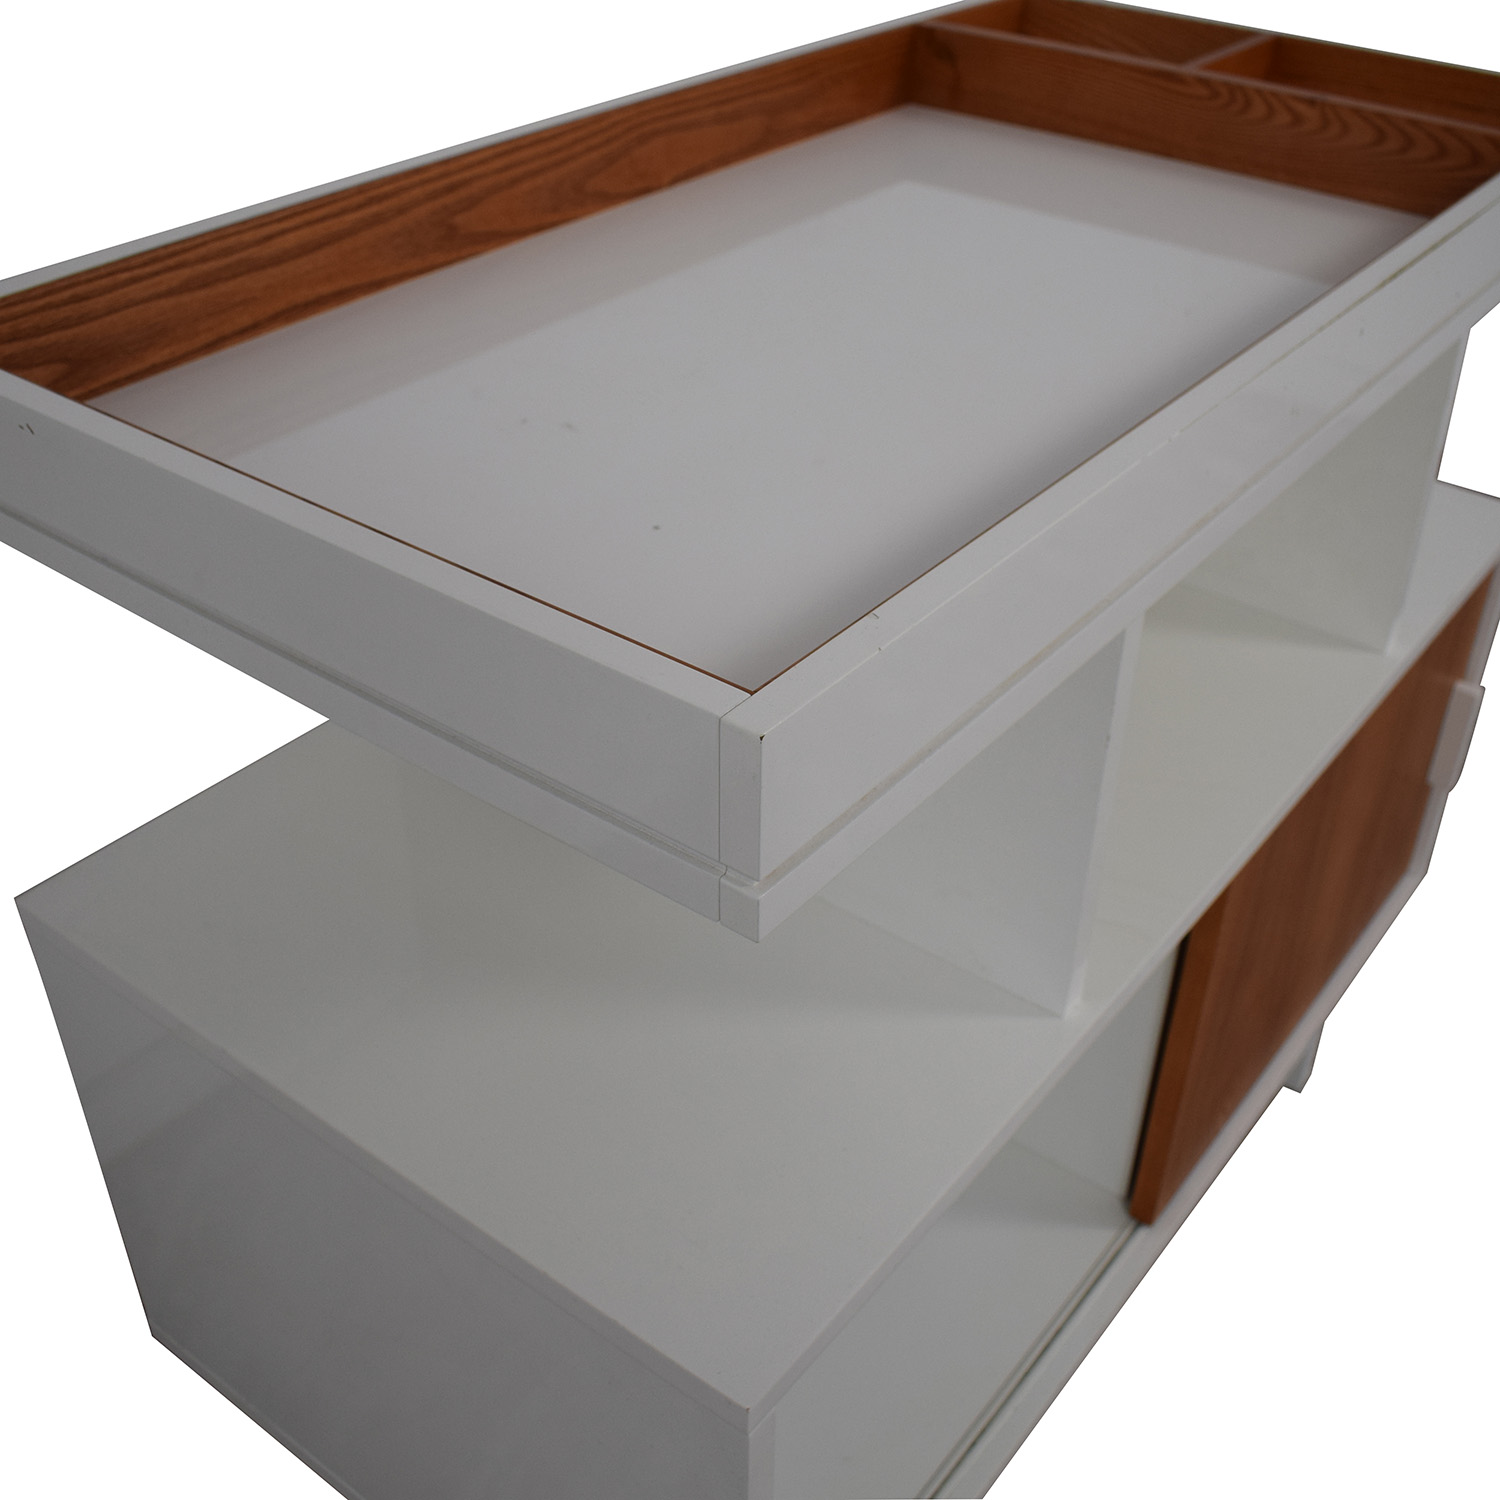 David Netto Changing Table / Utility Tables